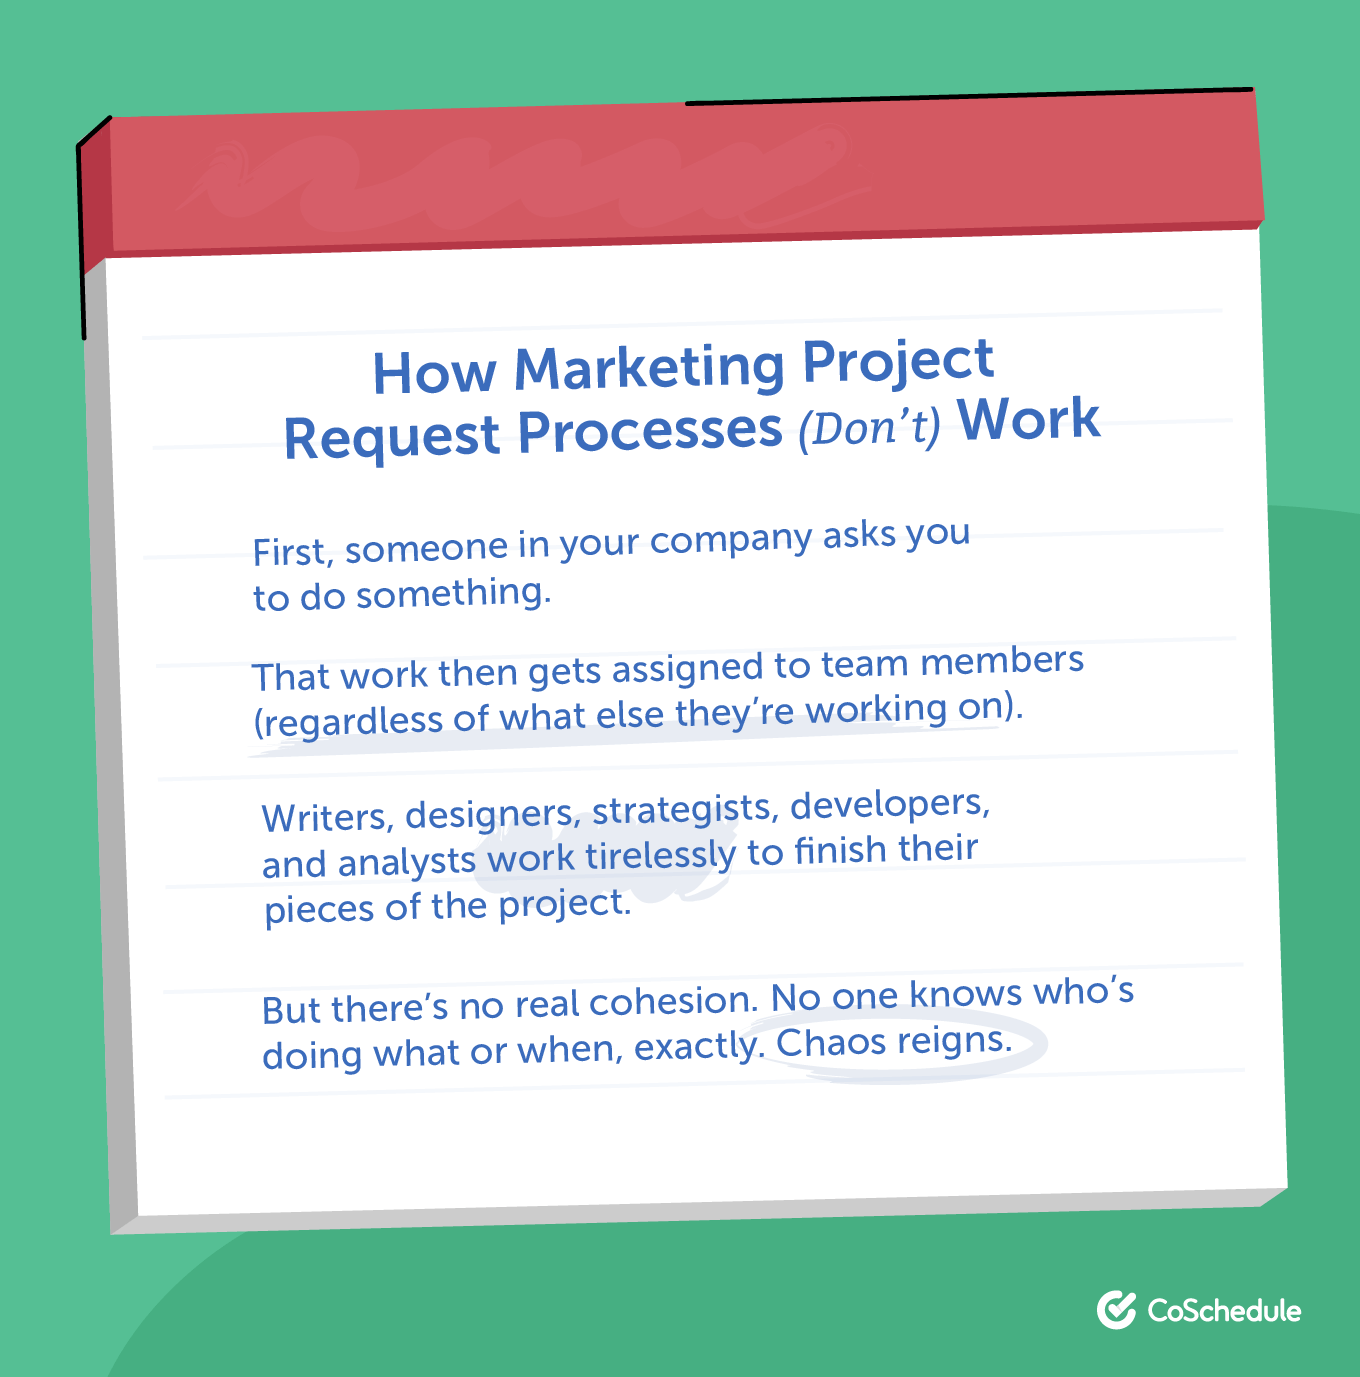 How Marketing Project Request Processes (Don't) Work